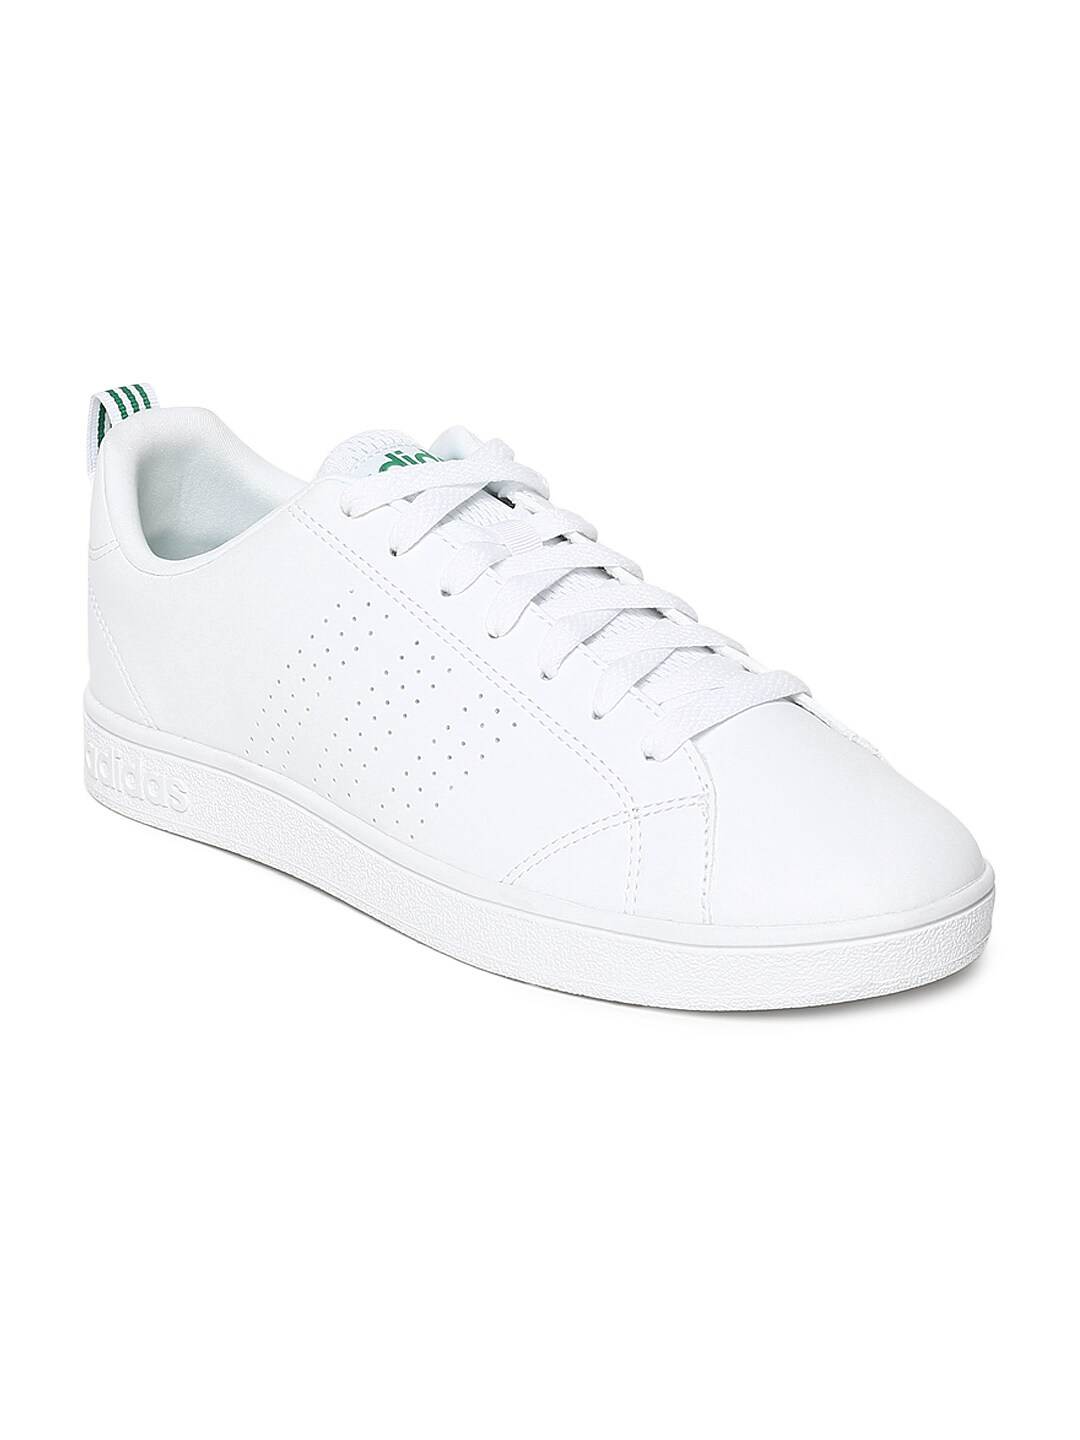 on sale cbe2d 12b50 Tennis Shoes  Buy Tennis Shoes Online in India at Best Price